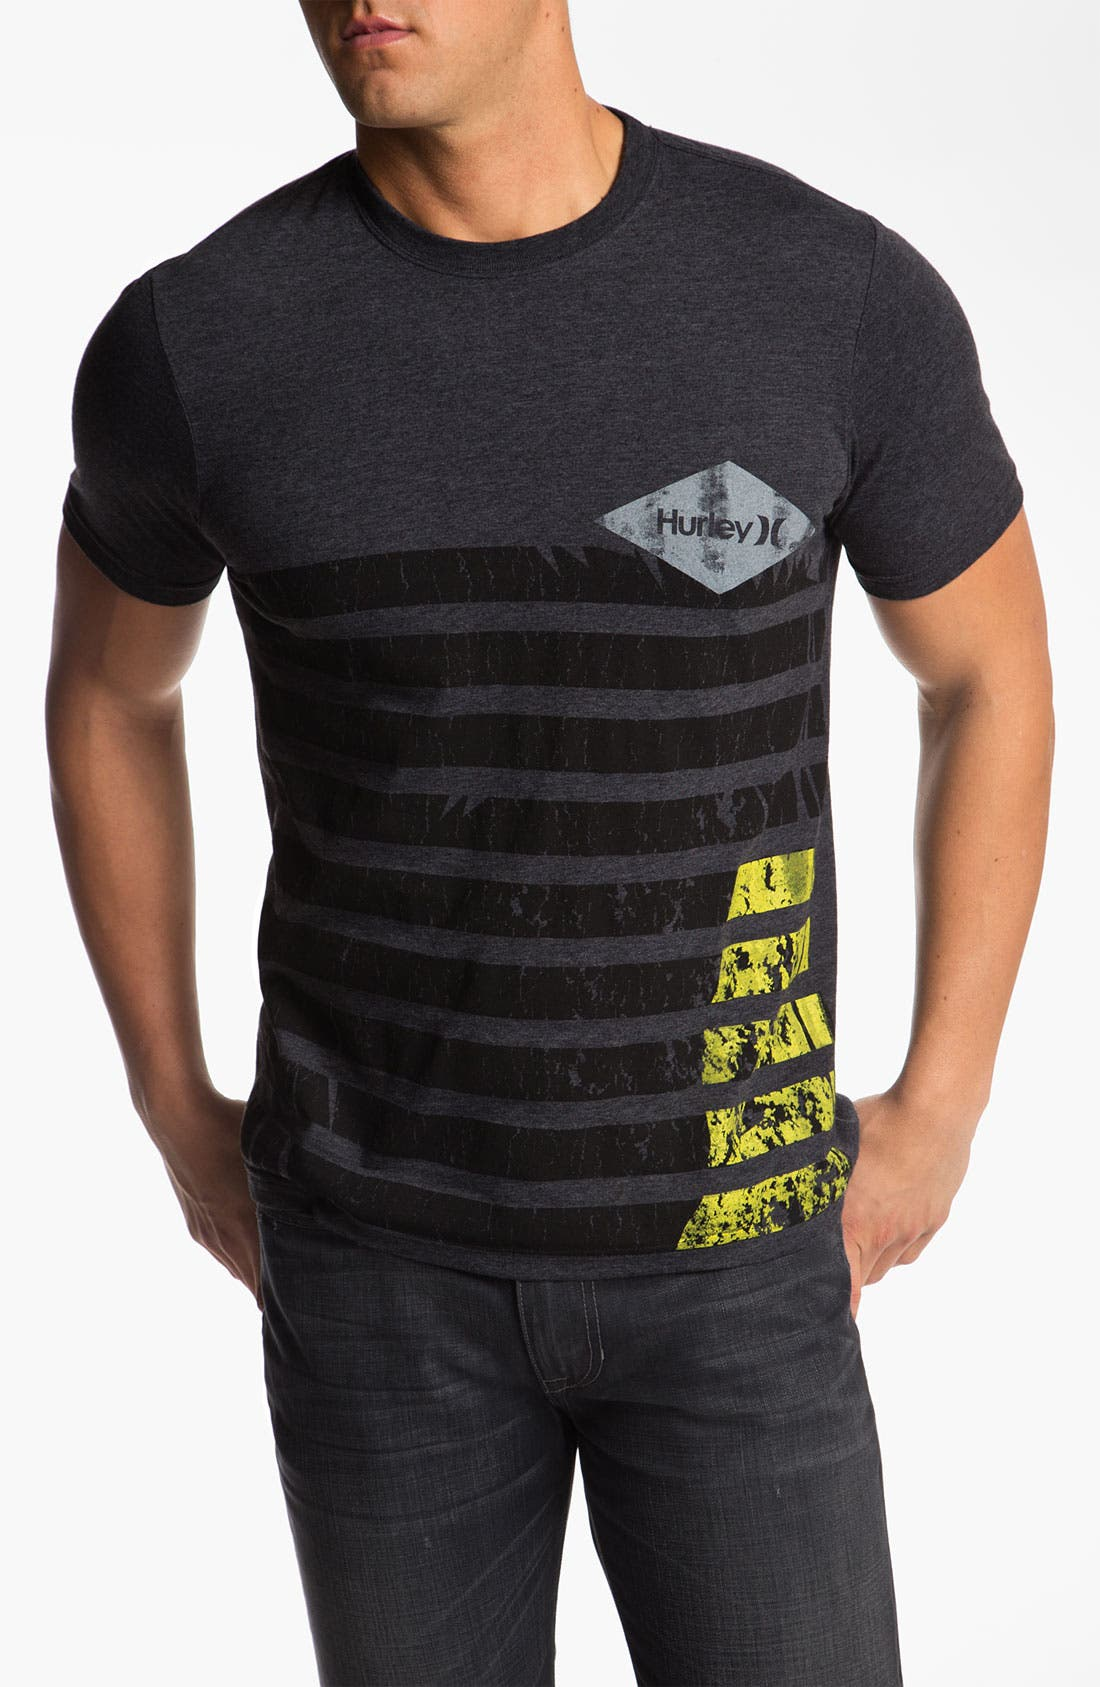 Alternate Image 1 Selected - Hurley 'Diamond in the Rough' Graphic T-Shirt